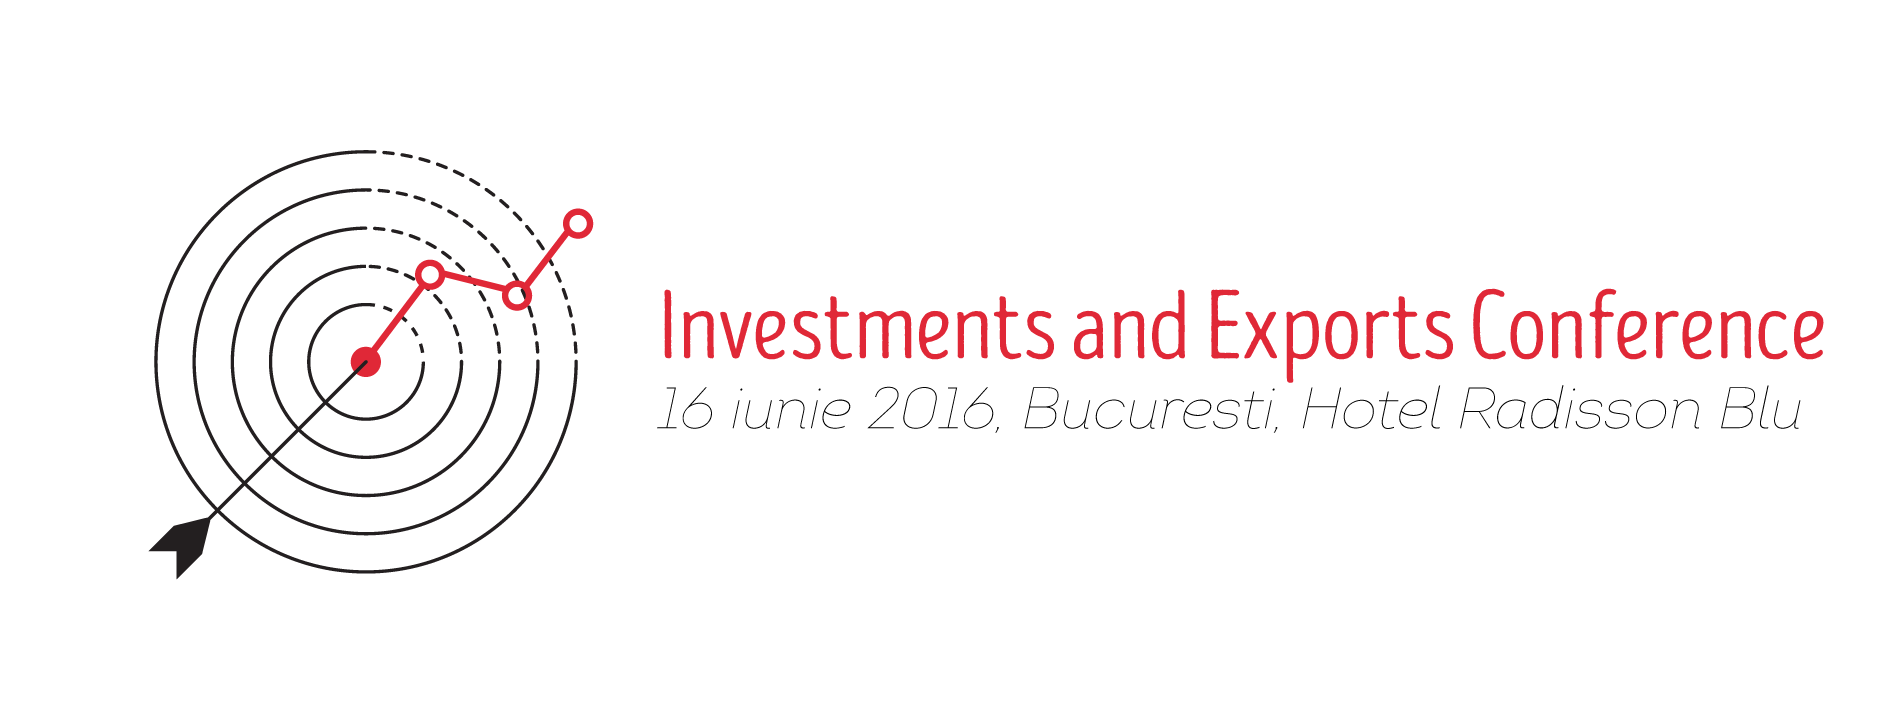 Investments and Exports Conference